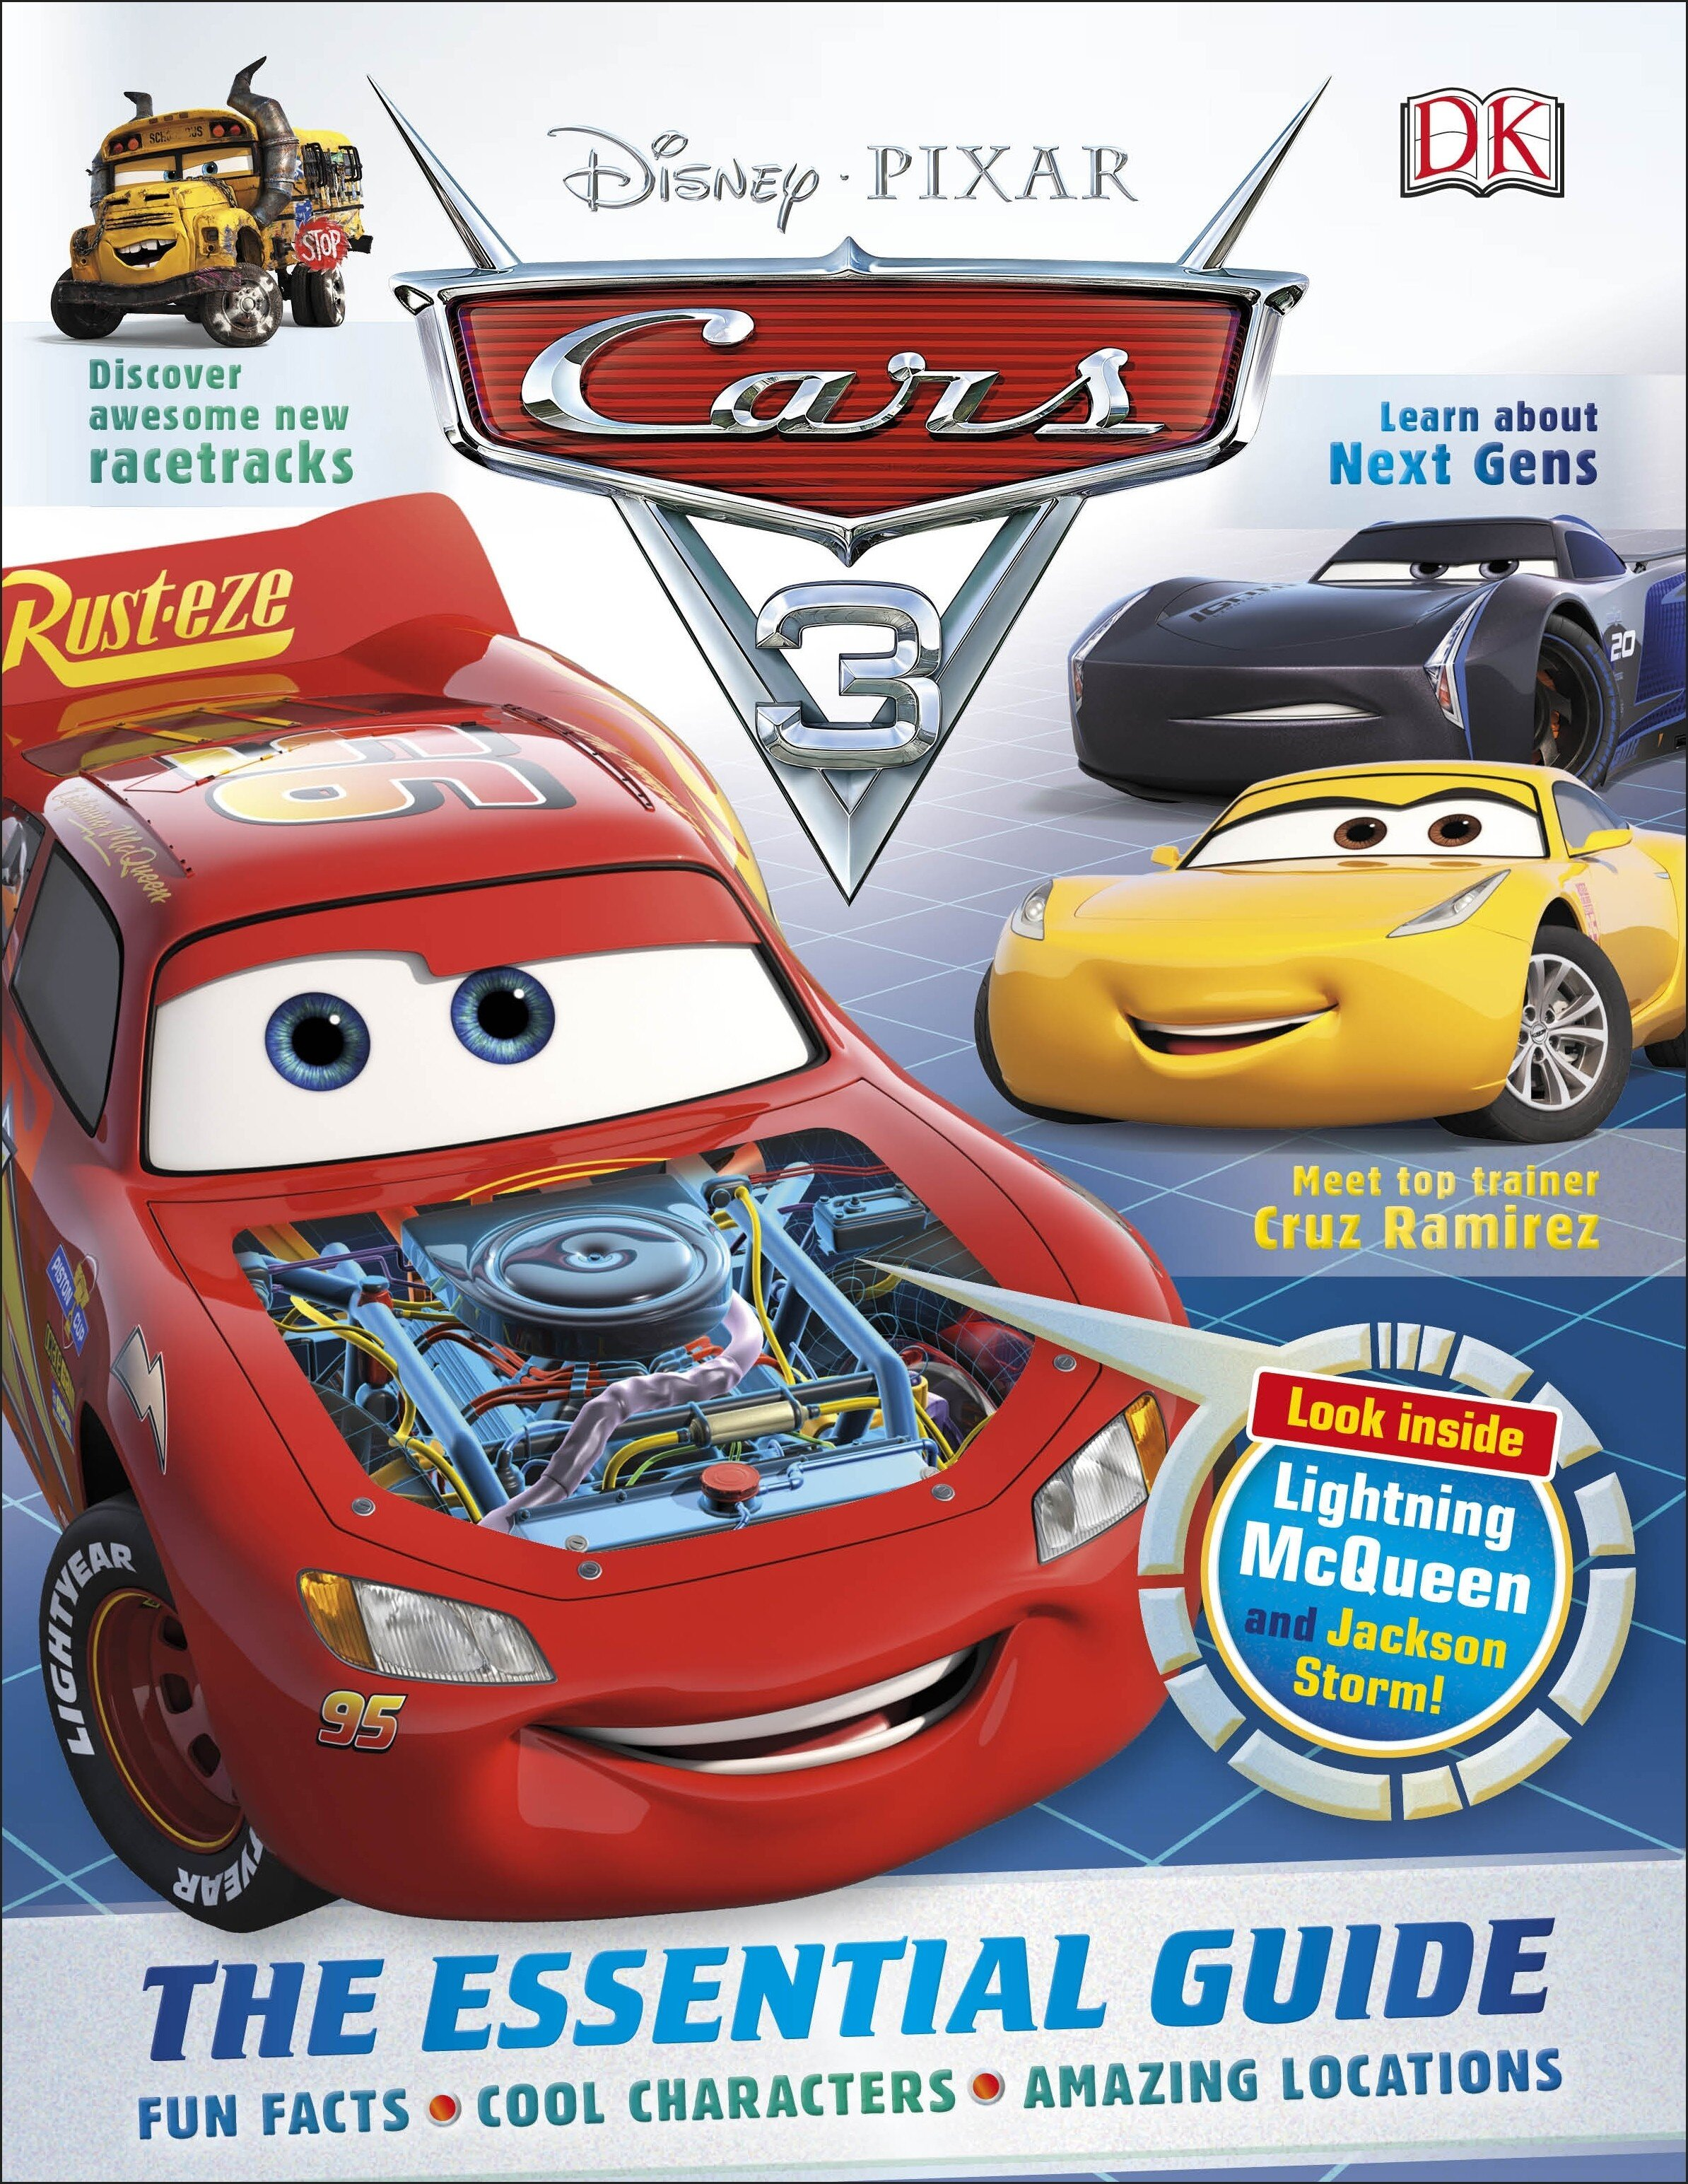 Disney Pixar Cars 3. The Essential Guide